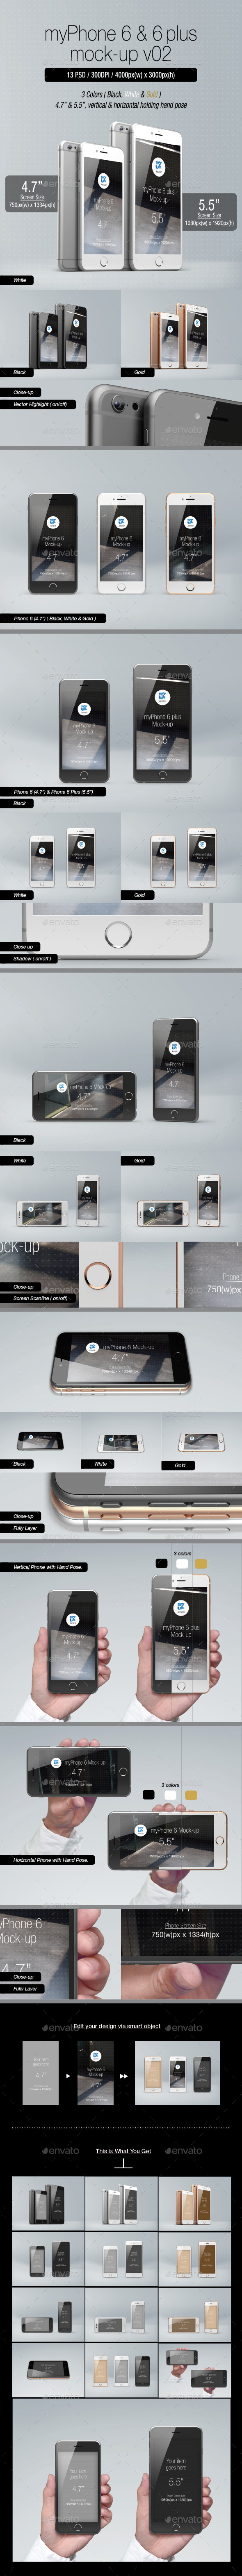 GraphicRiver myPhone 6 Mock-up v02 9009747